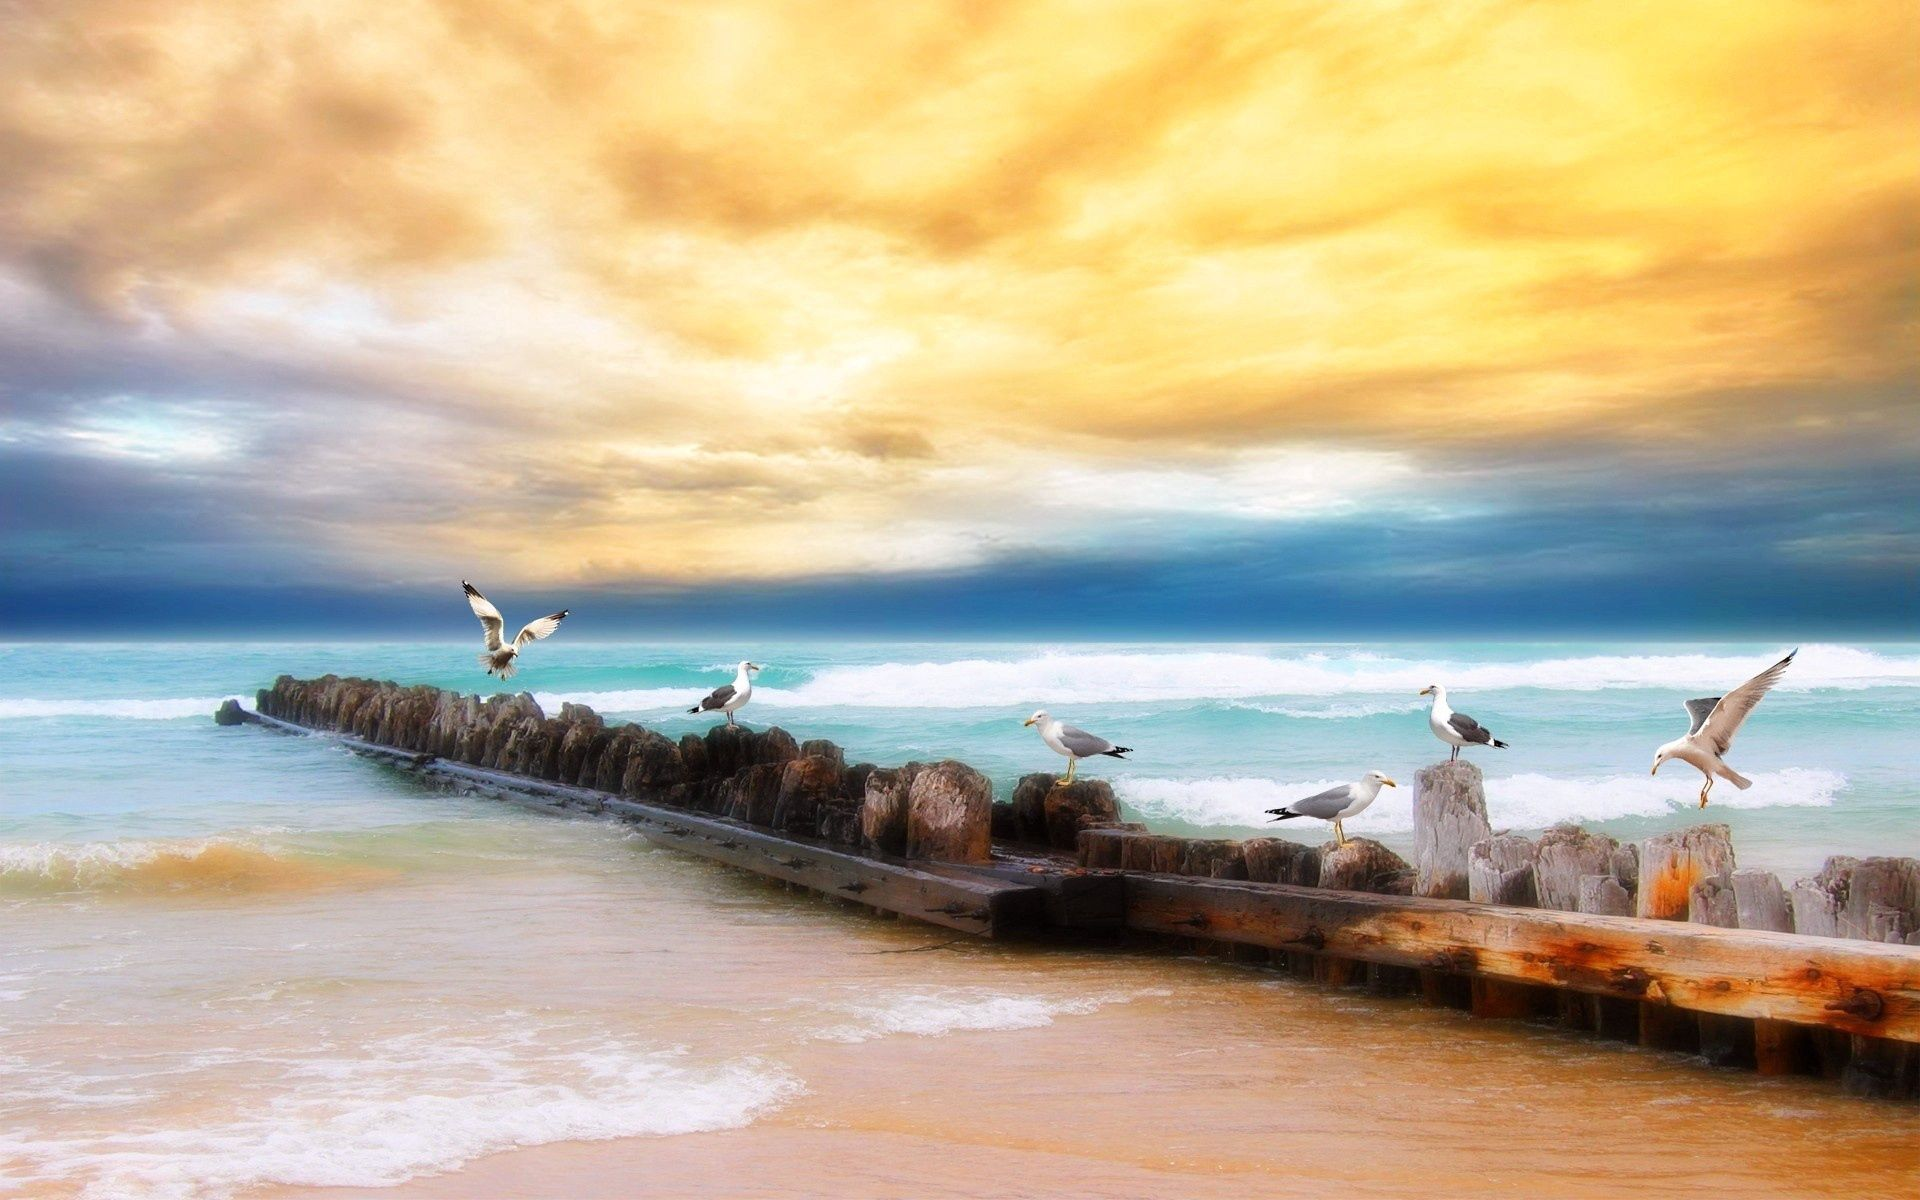 115634 download wallpaper Nature, Logs, Shore, Bank, Sea, Sky, Beach, Horizon, Birds, Seagulls screensavers and pictures for free